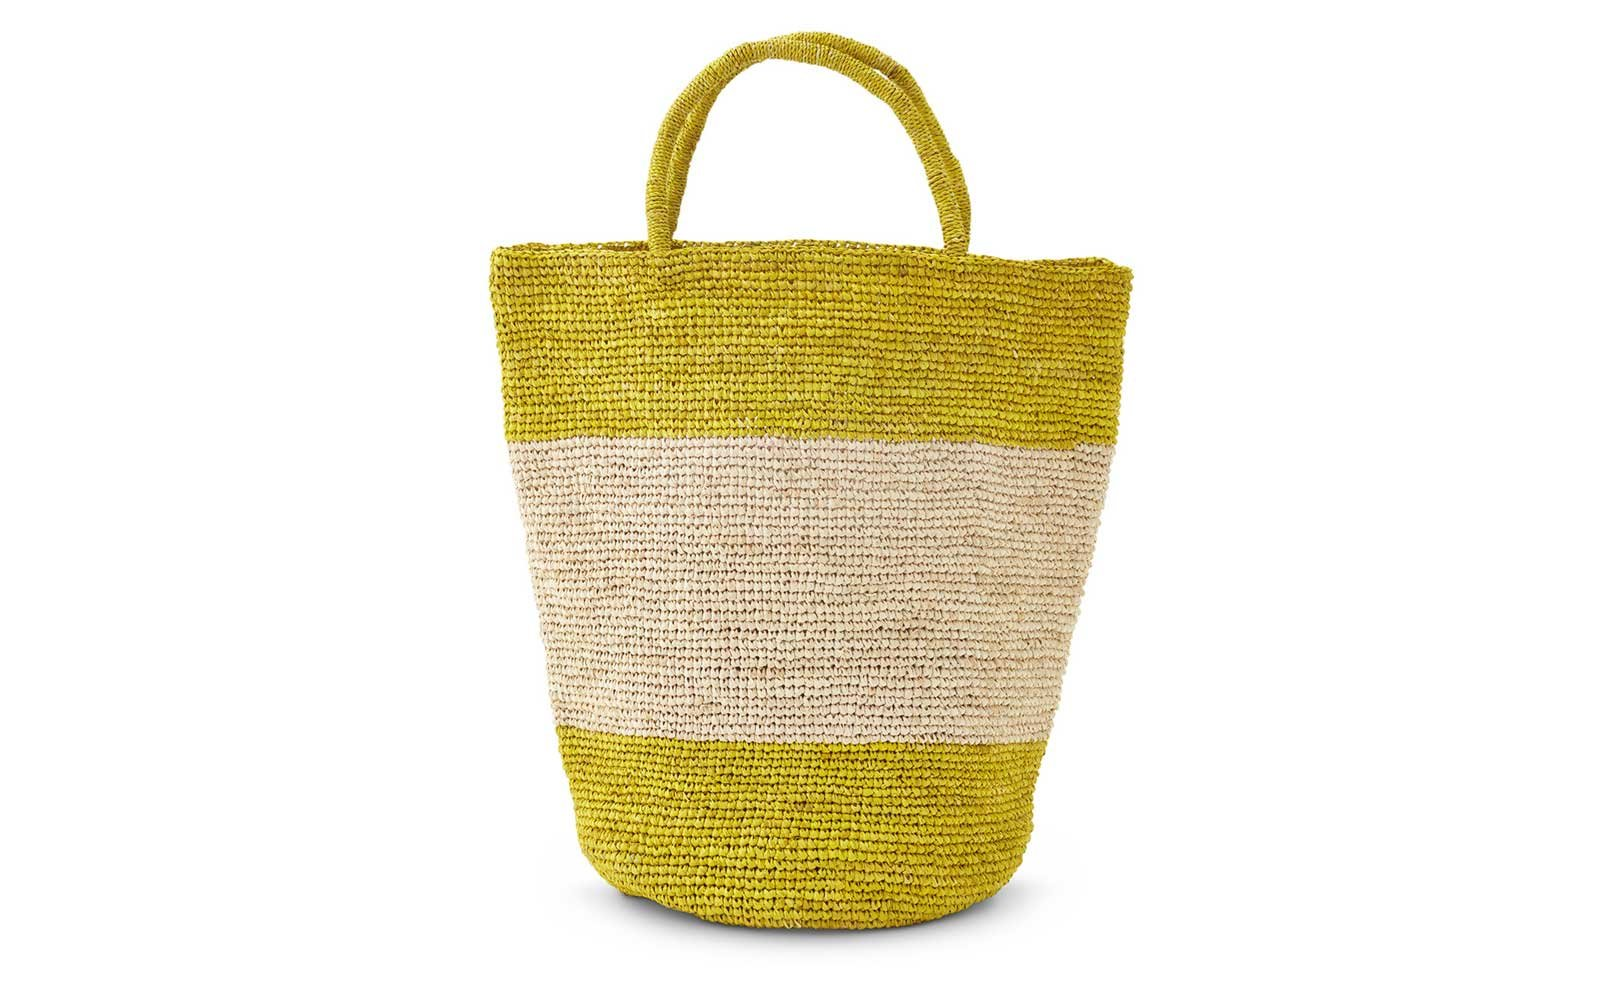 Striped Beach Totes